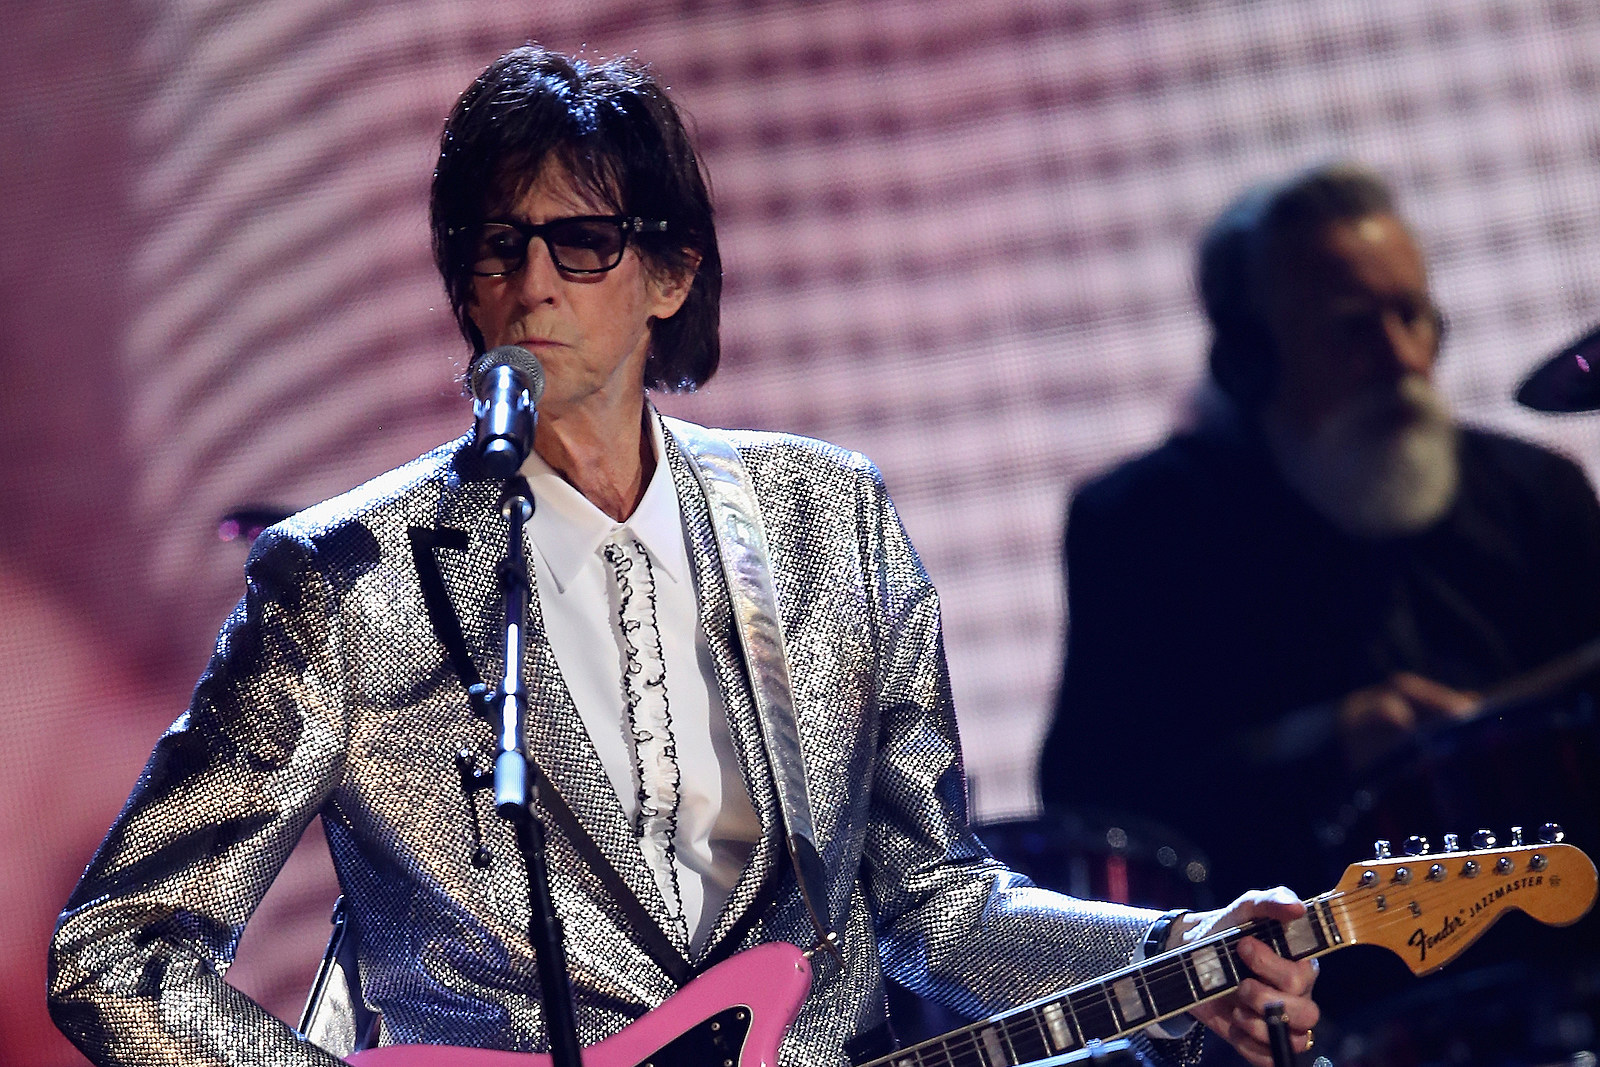 Cars Frontman Ric Ocasek Died After Unnamed Surgical Procedure